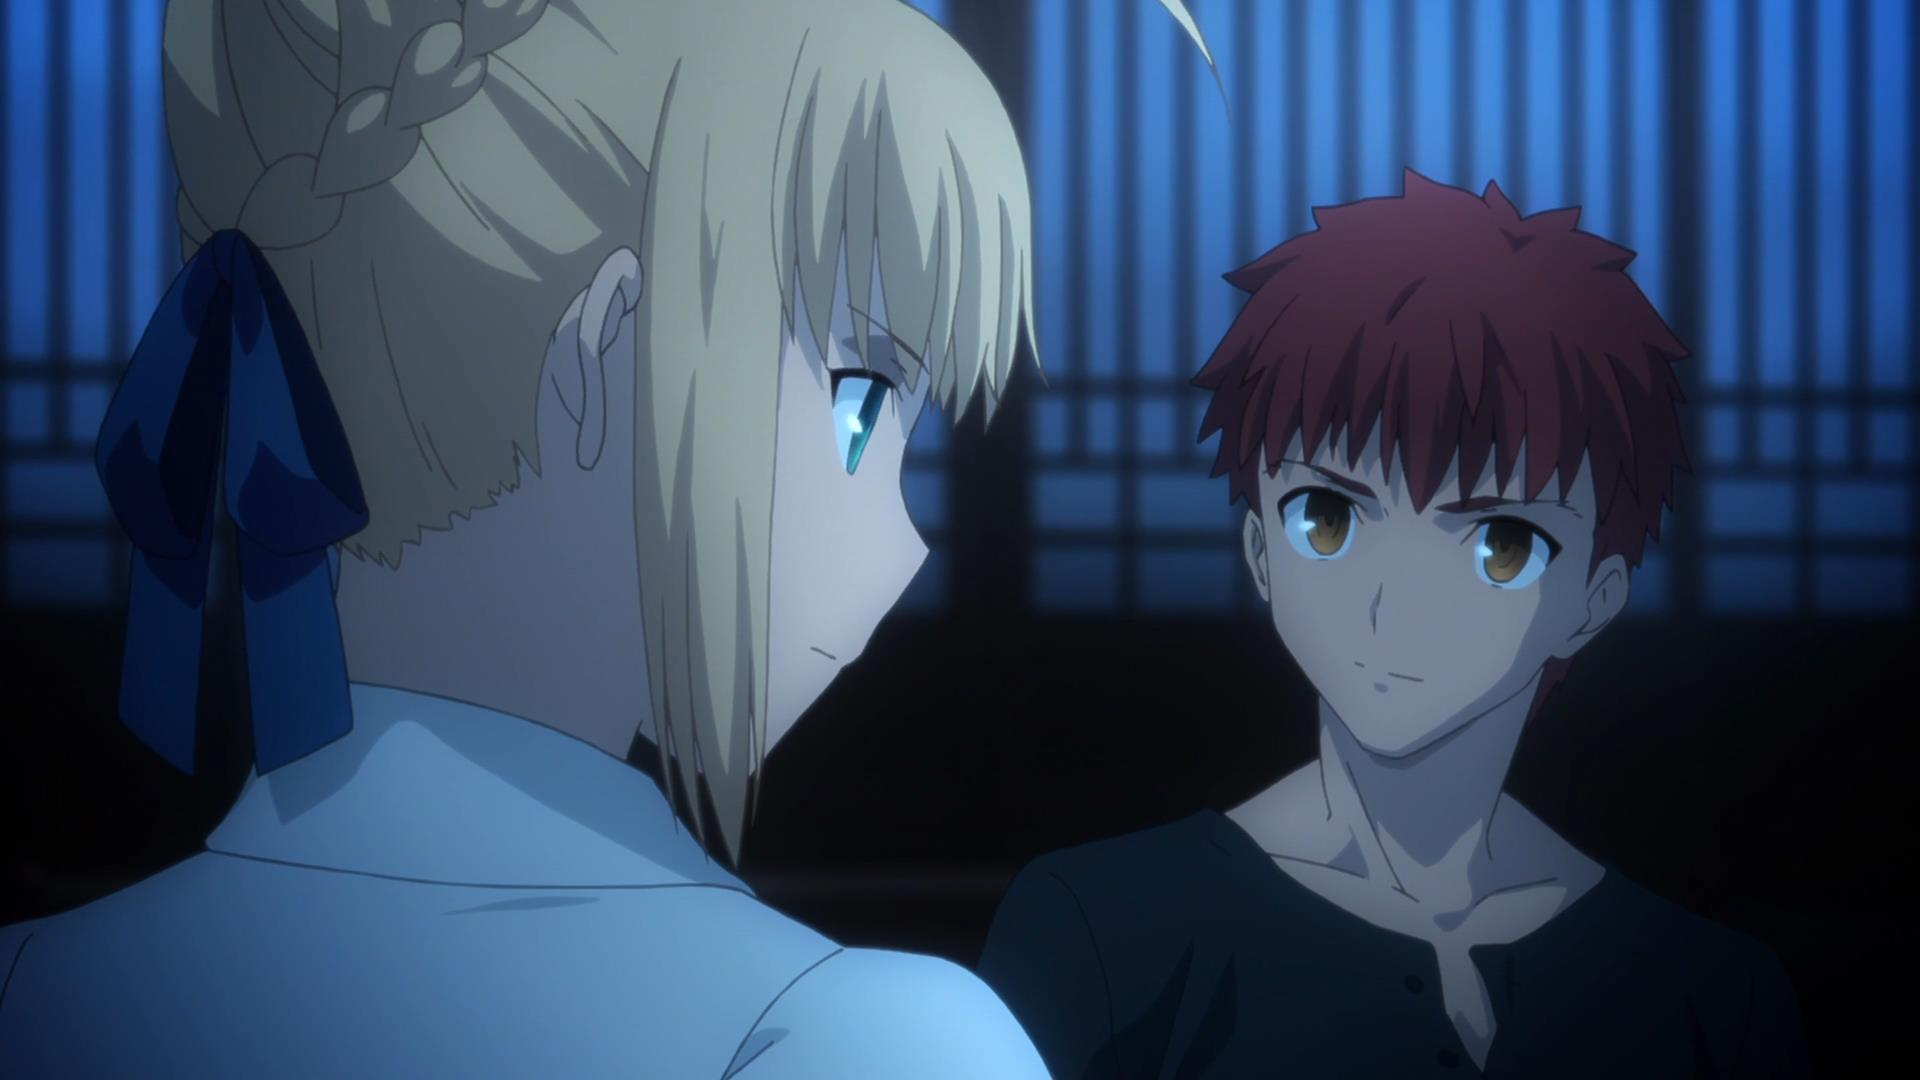 saber and shirou ending a relationship